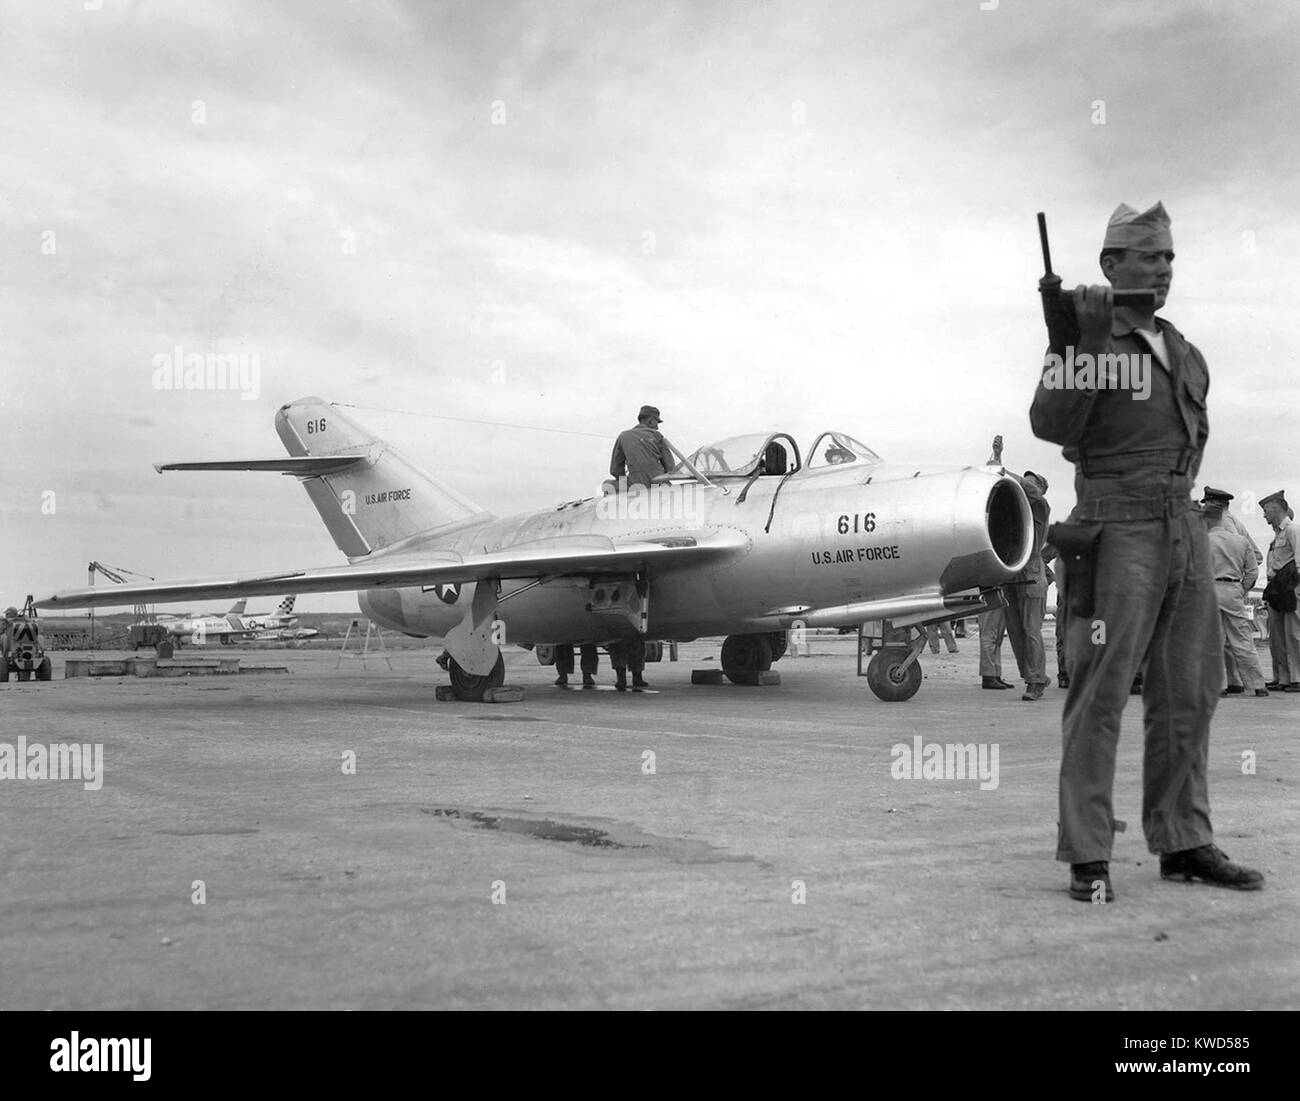 Soviet MiG-15 jet fighter delivered by defecting North Korean pilot Lt. No Kum-Sok in 1953. Its guard is armed with - Stock Image